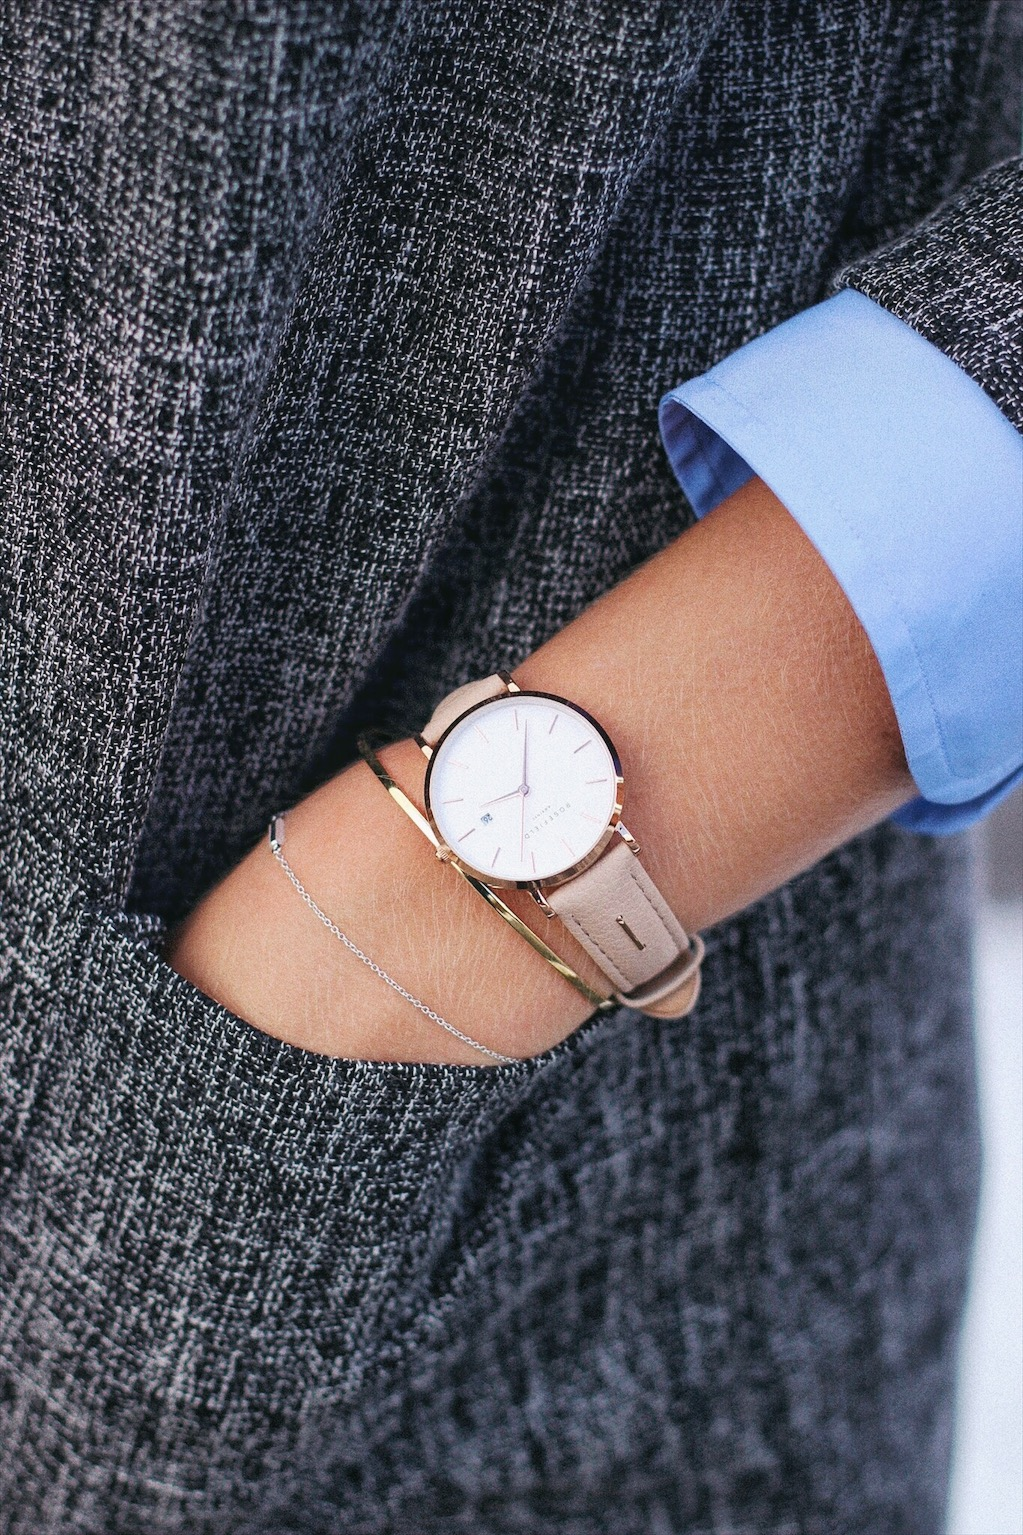 Rosefield watch on style blog